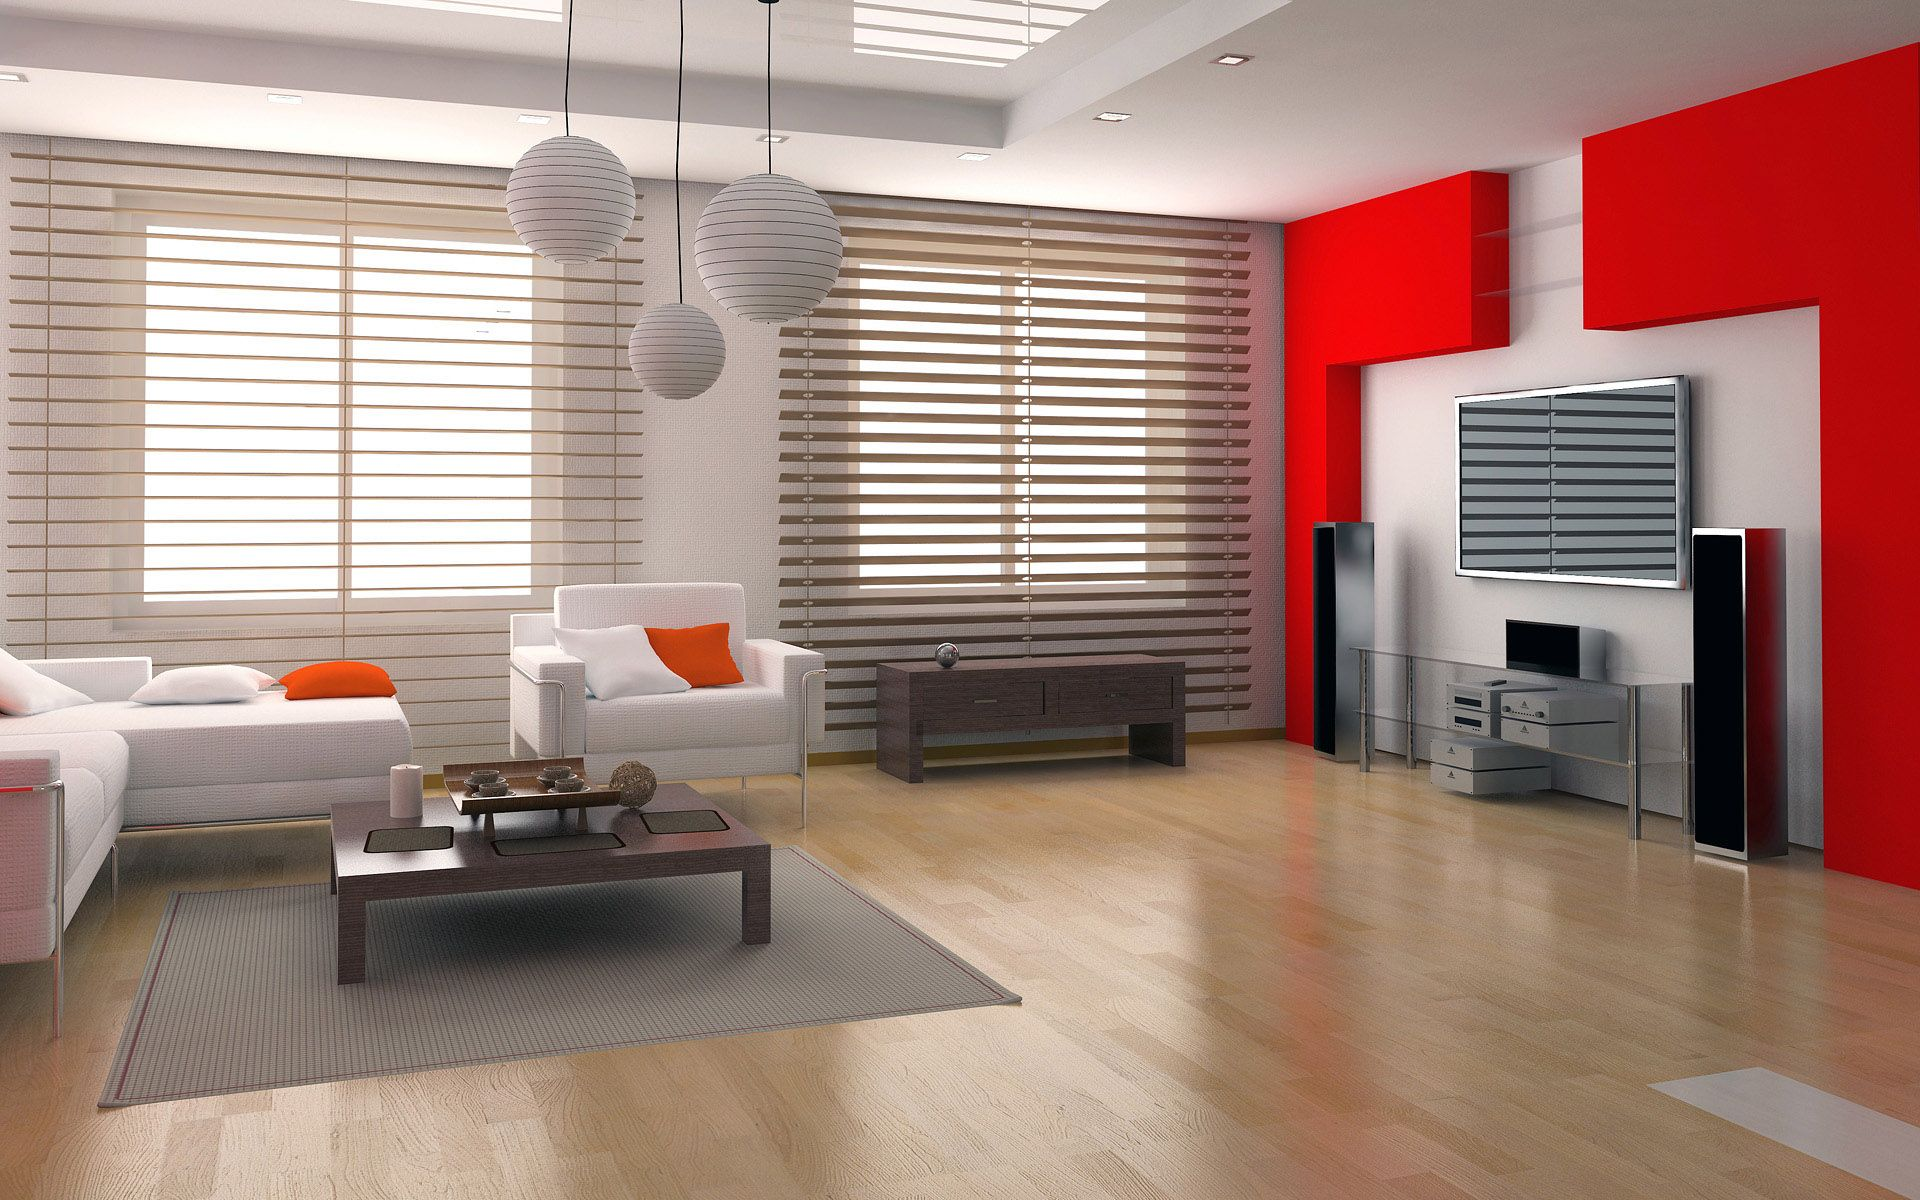 Interior Designs Hd Background Wallpaper 21 HD Wallpapers Home